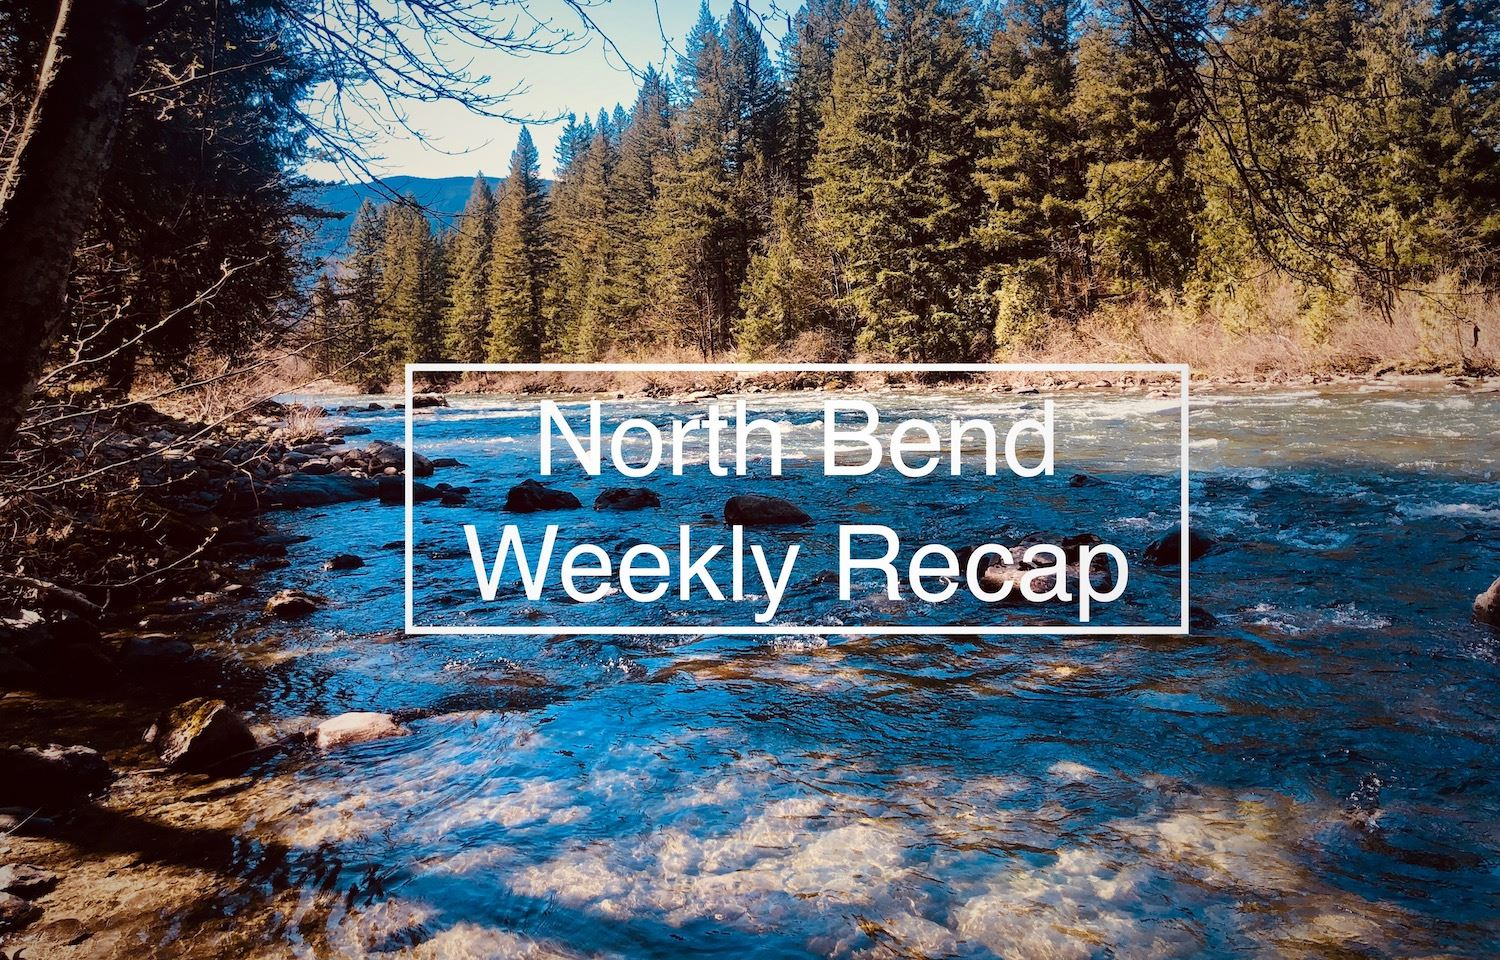 Weekly Recap River